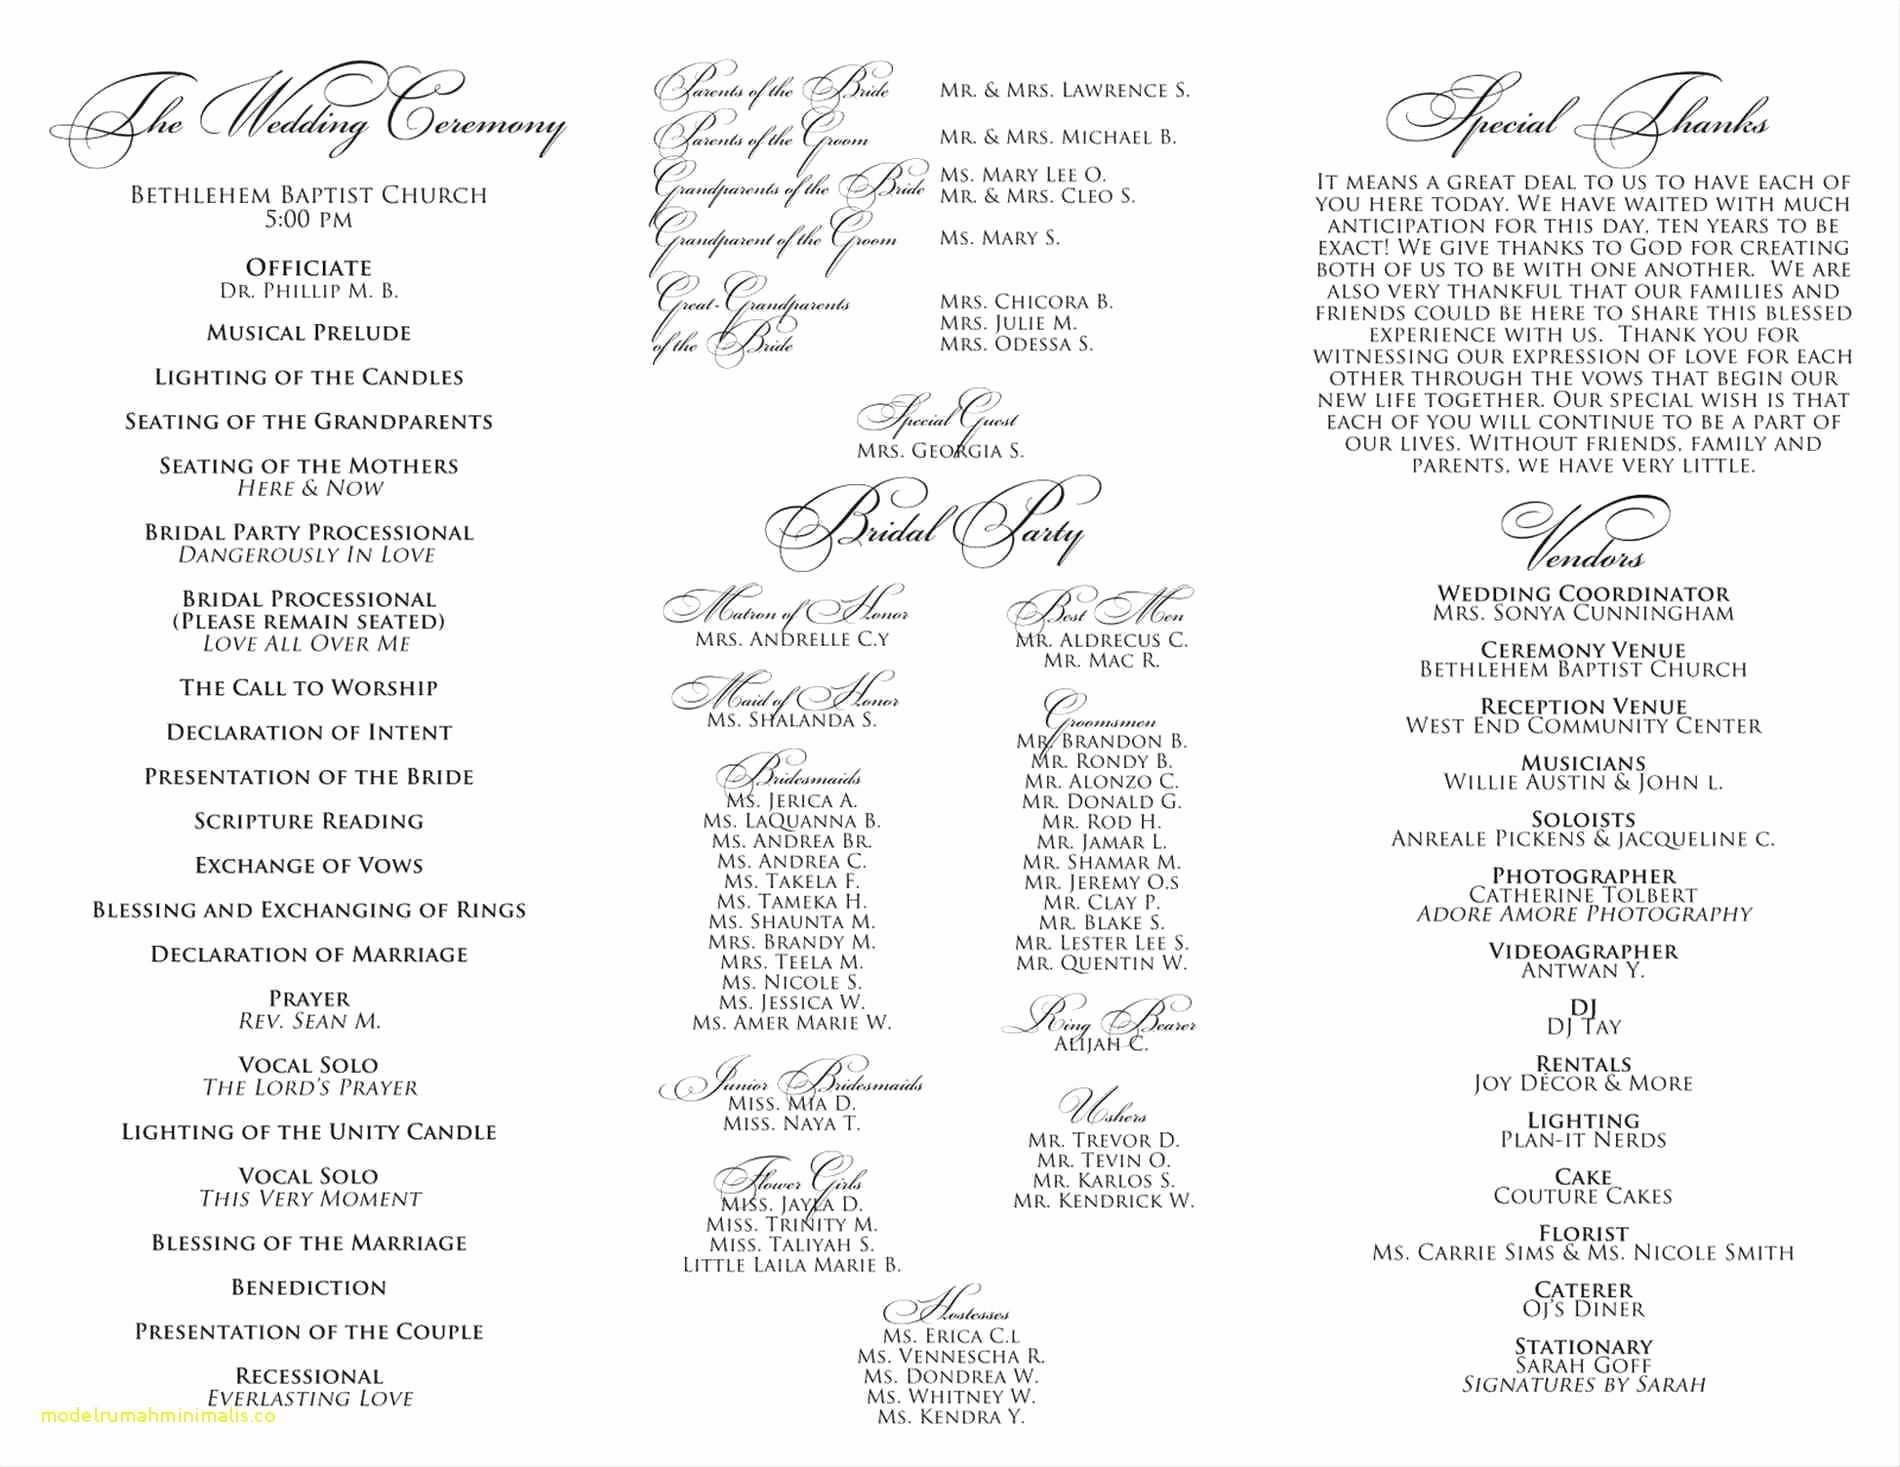 Church Service Program Template Unique Awesome Baptist Church order Service Template